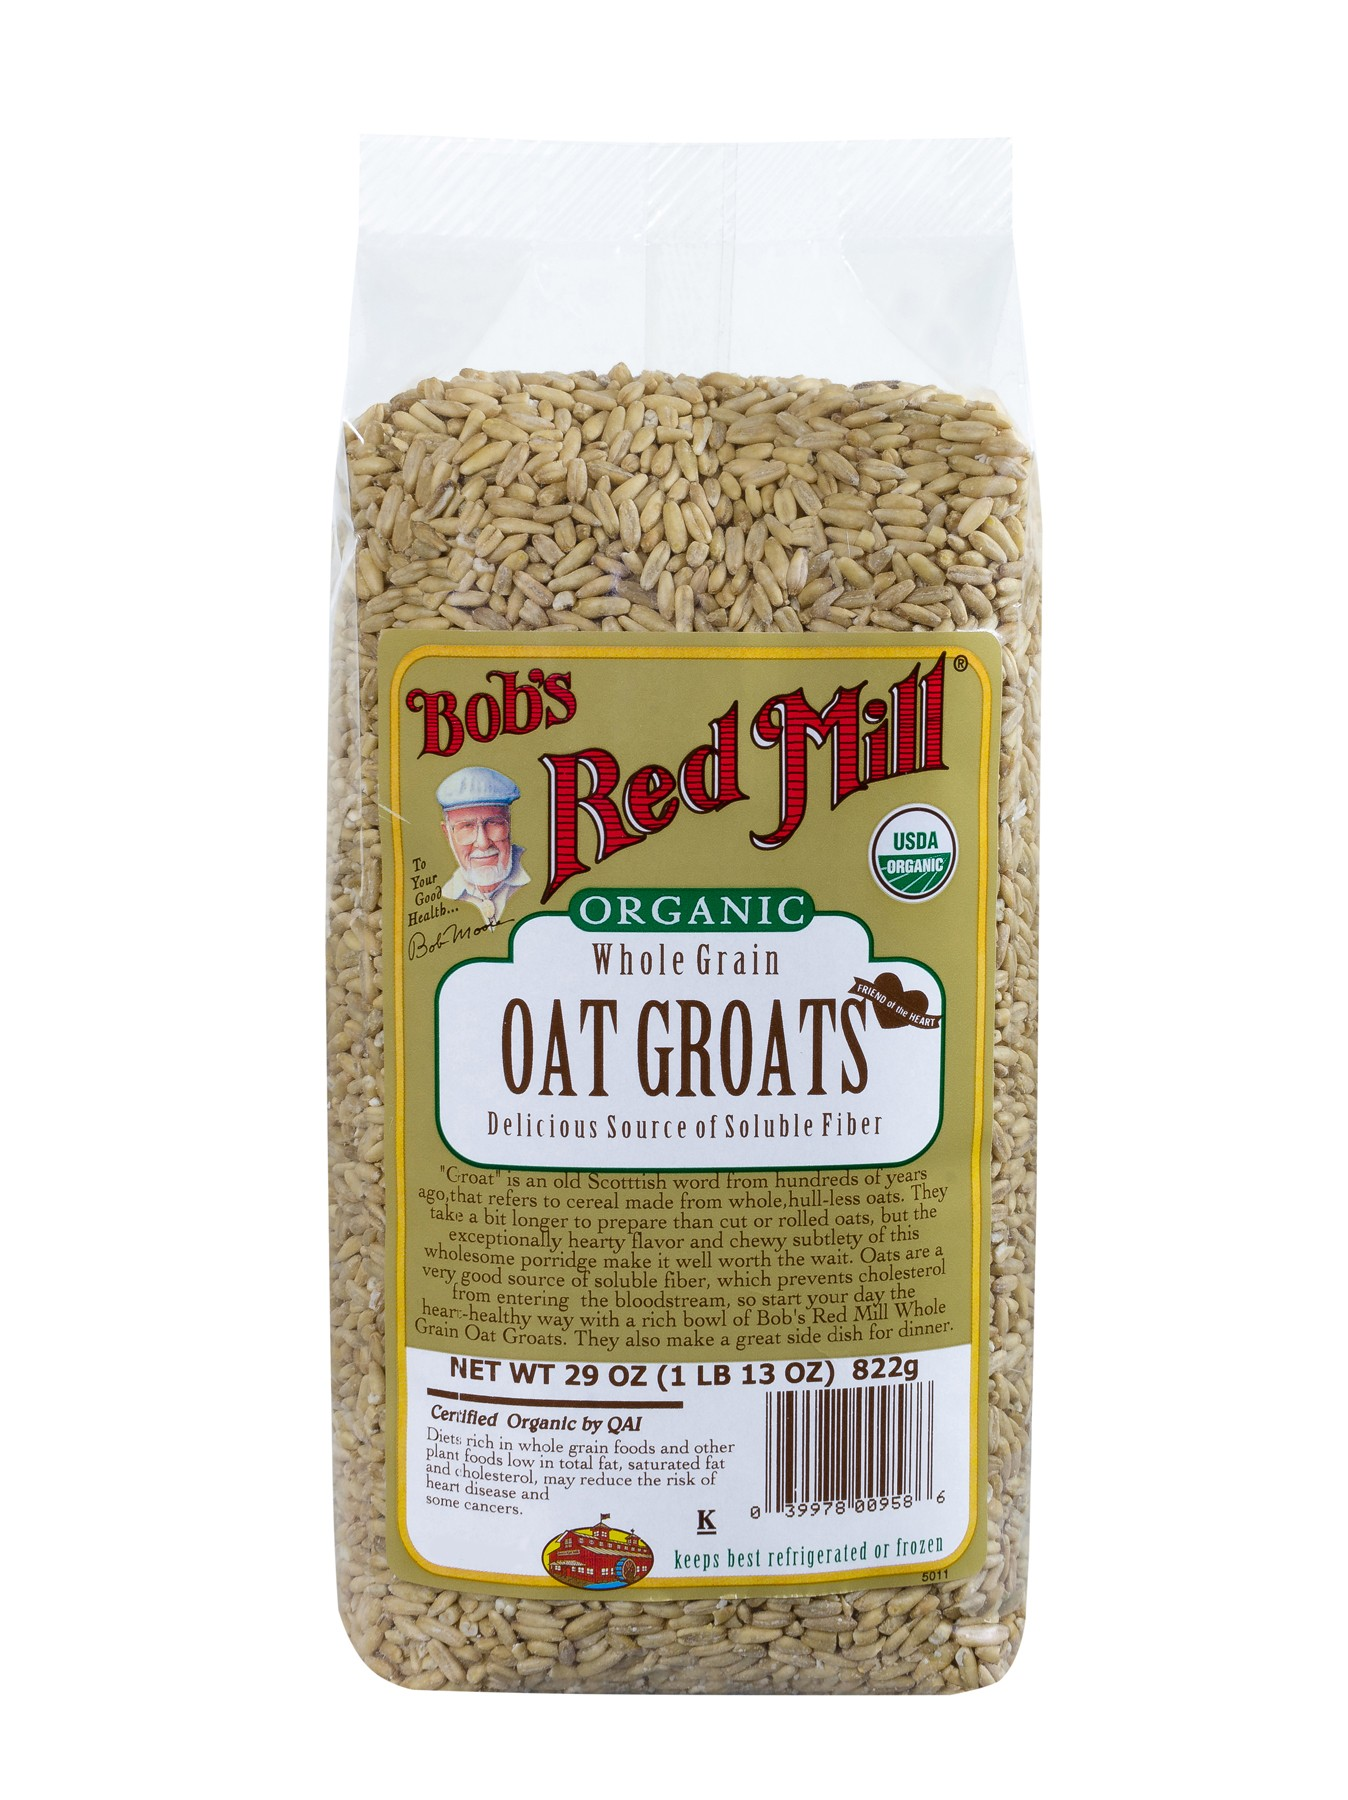 Bob's Red Mill Organic Oat Groats